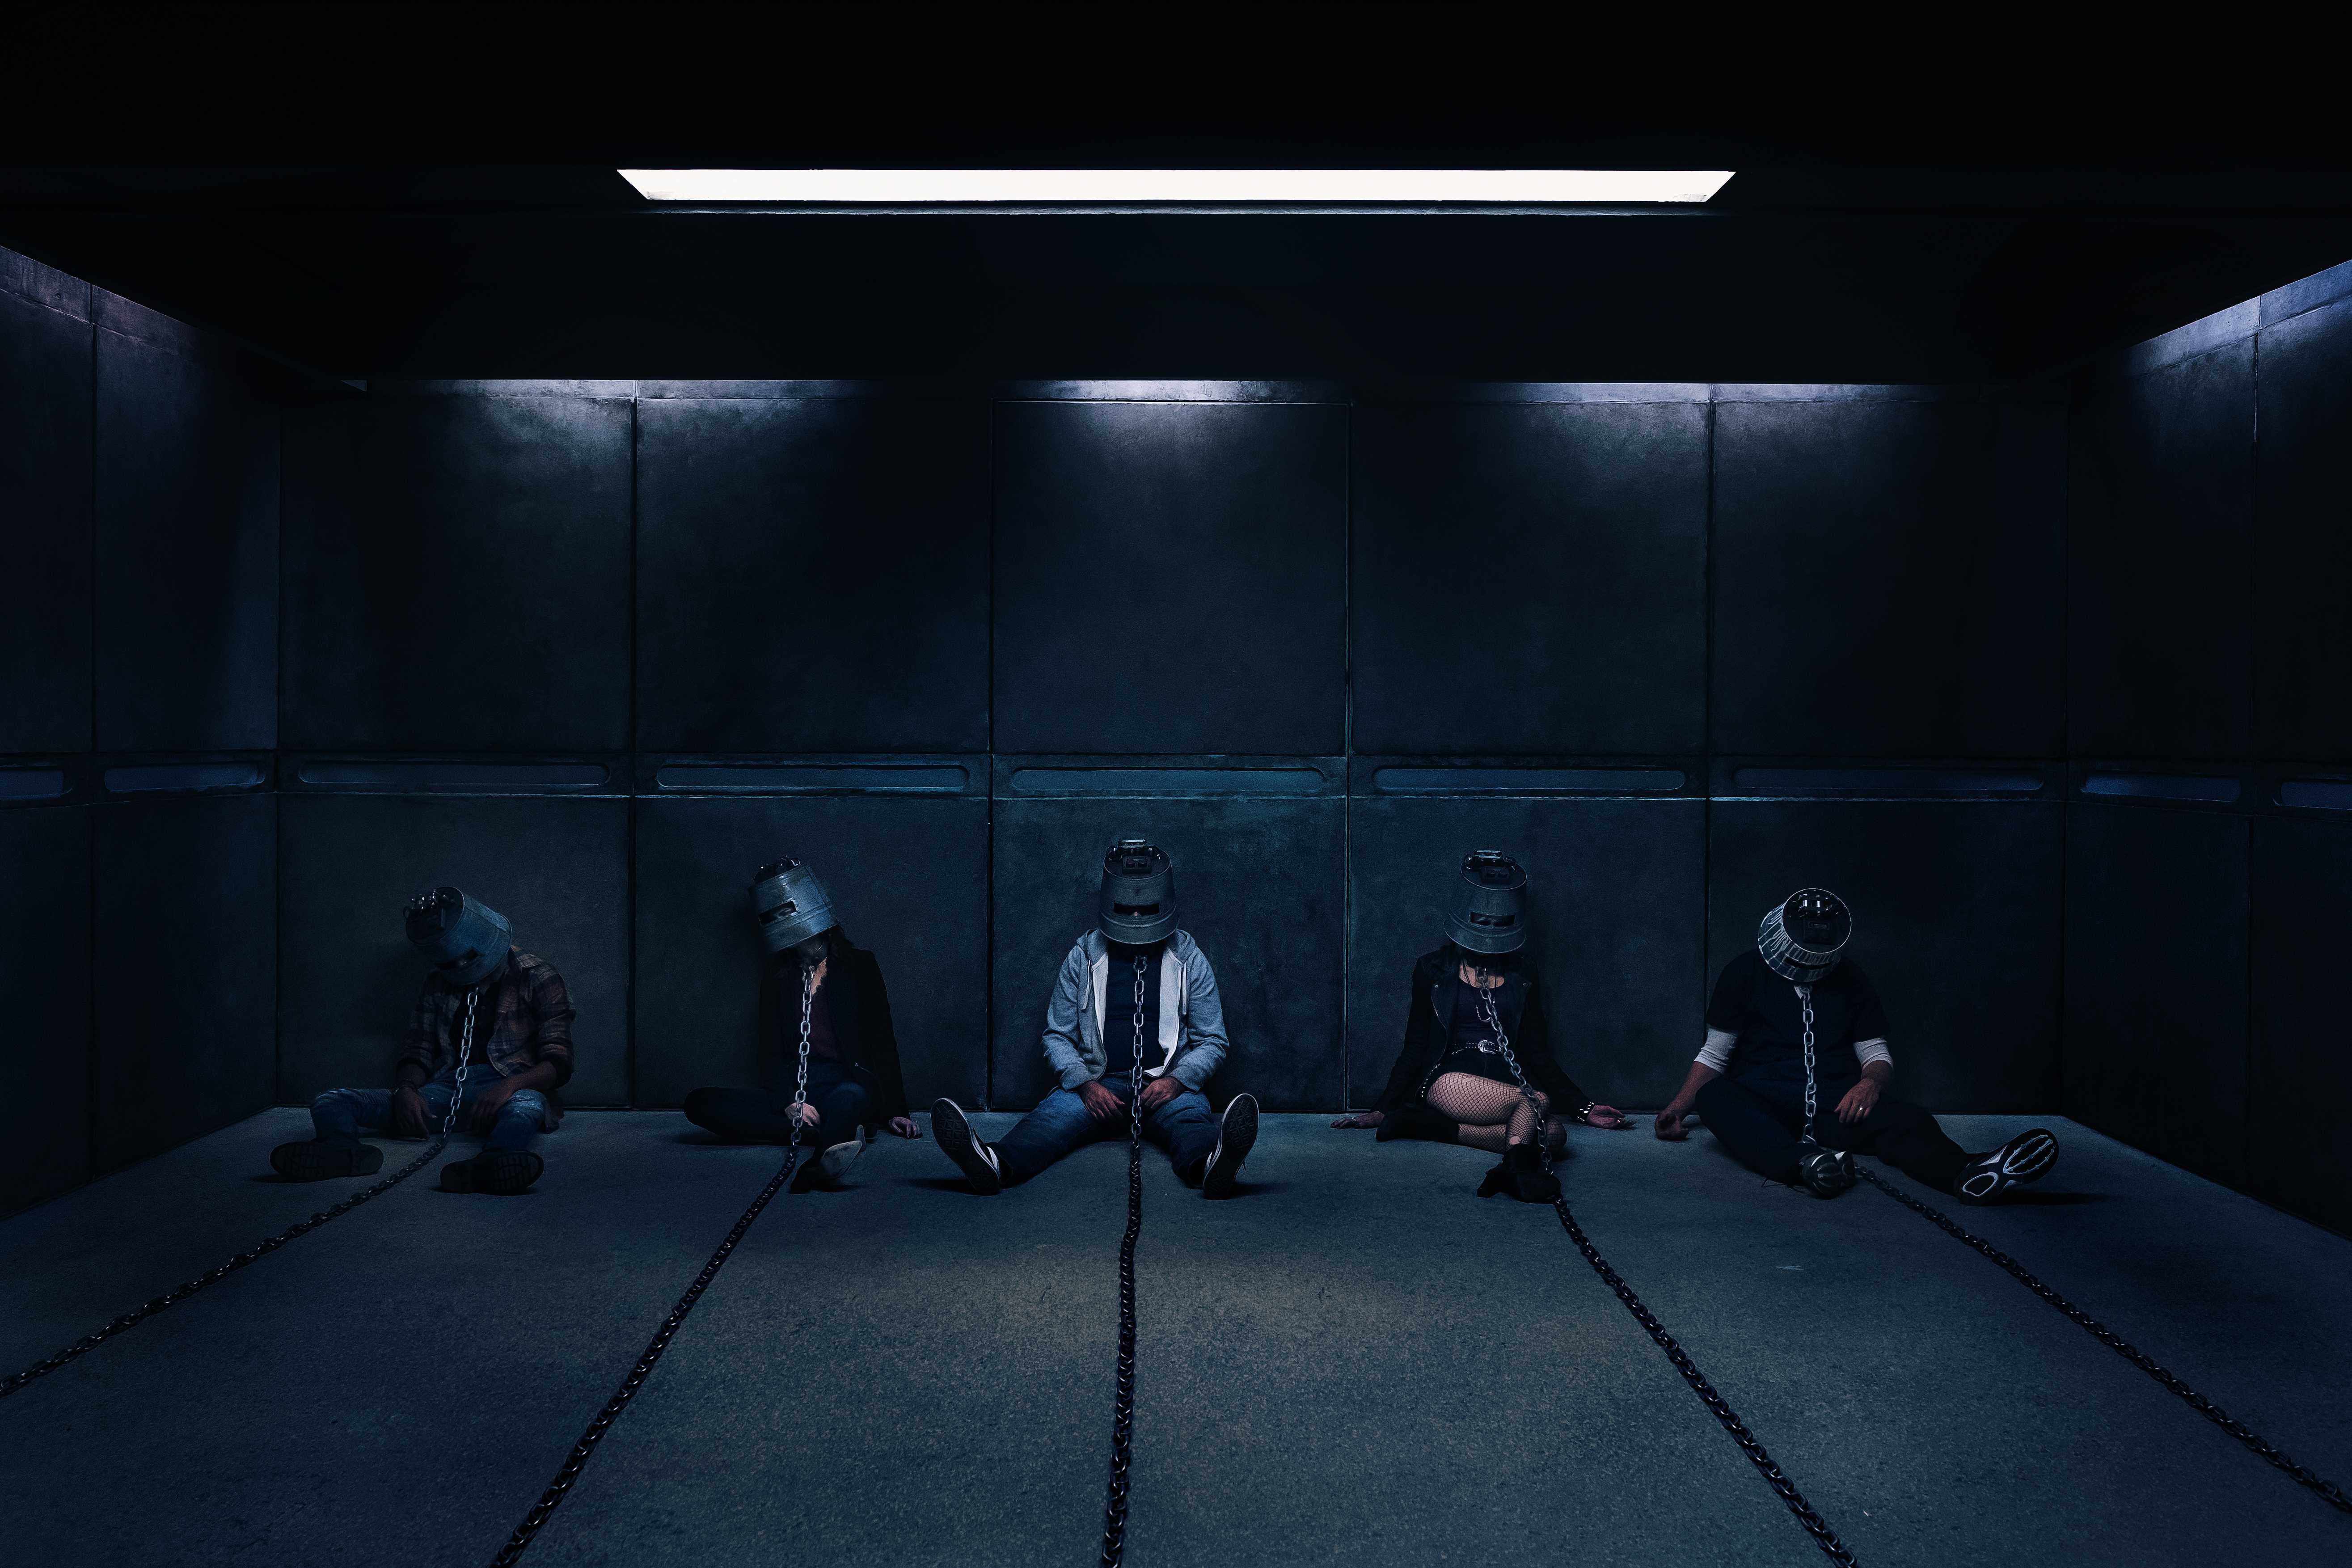 """LIONSGATE The eighth entry in the """"Saw"""" franchise, """"Jigsaw"""" resurrects its killer for more mayhem and """"trials"""" for the film's five victims. The film opened with $16.4 million at the US box office."""